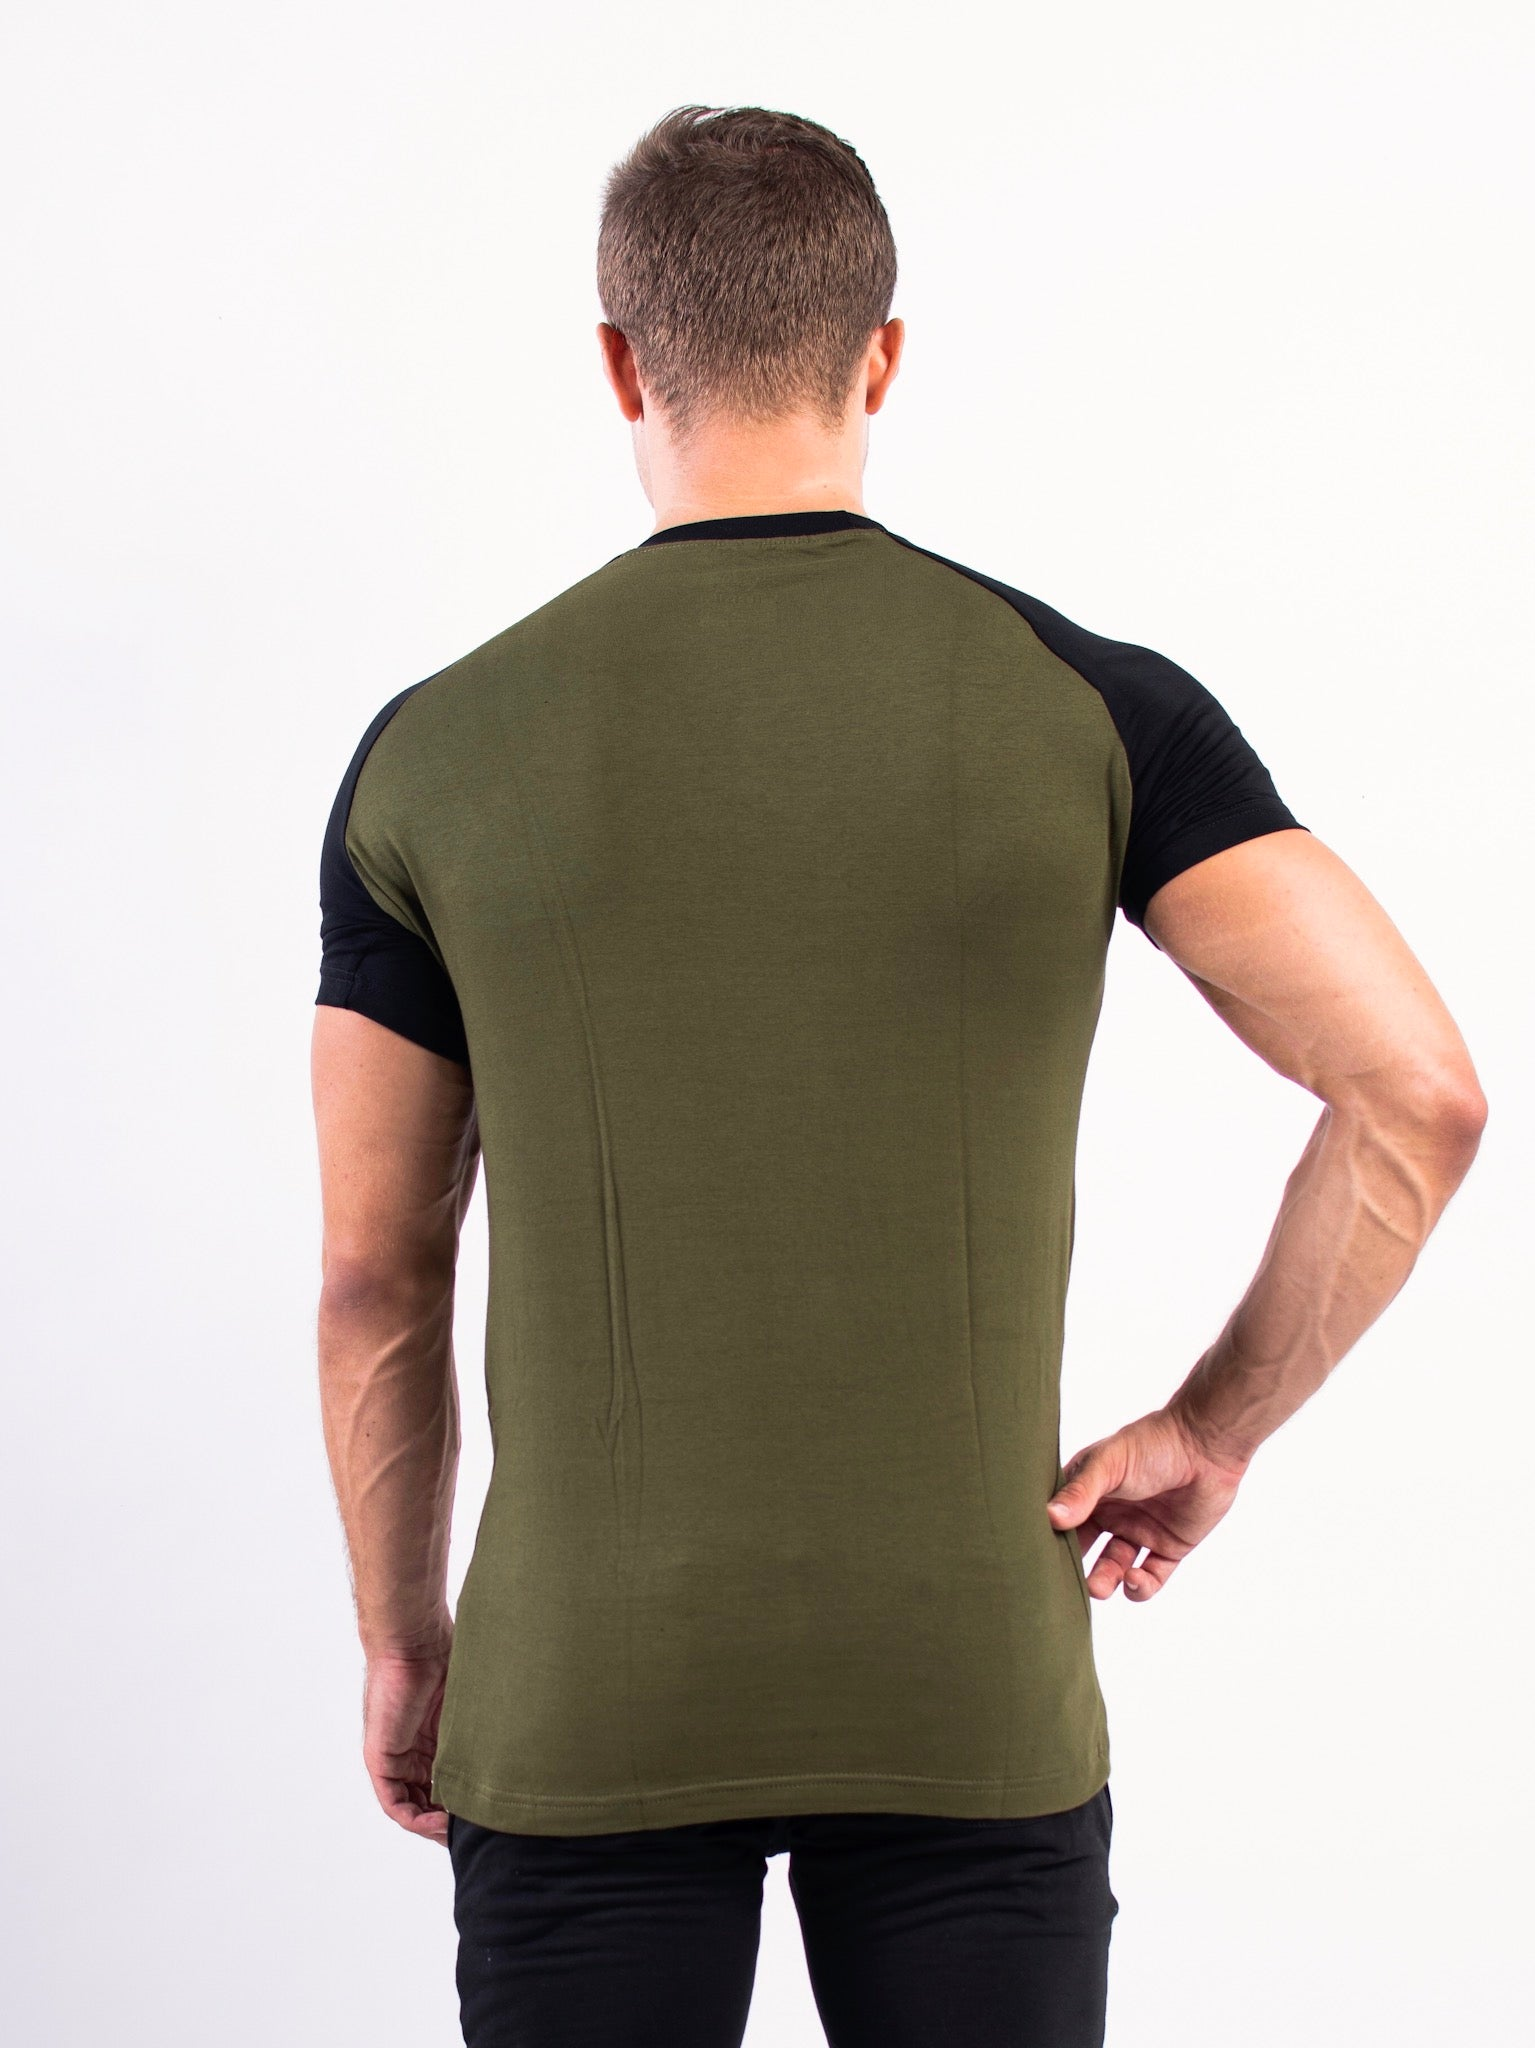 Split T-shirt Olive Green and Black